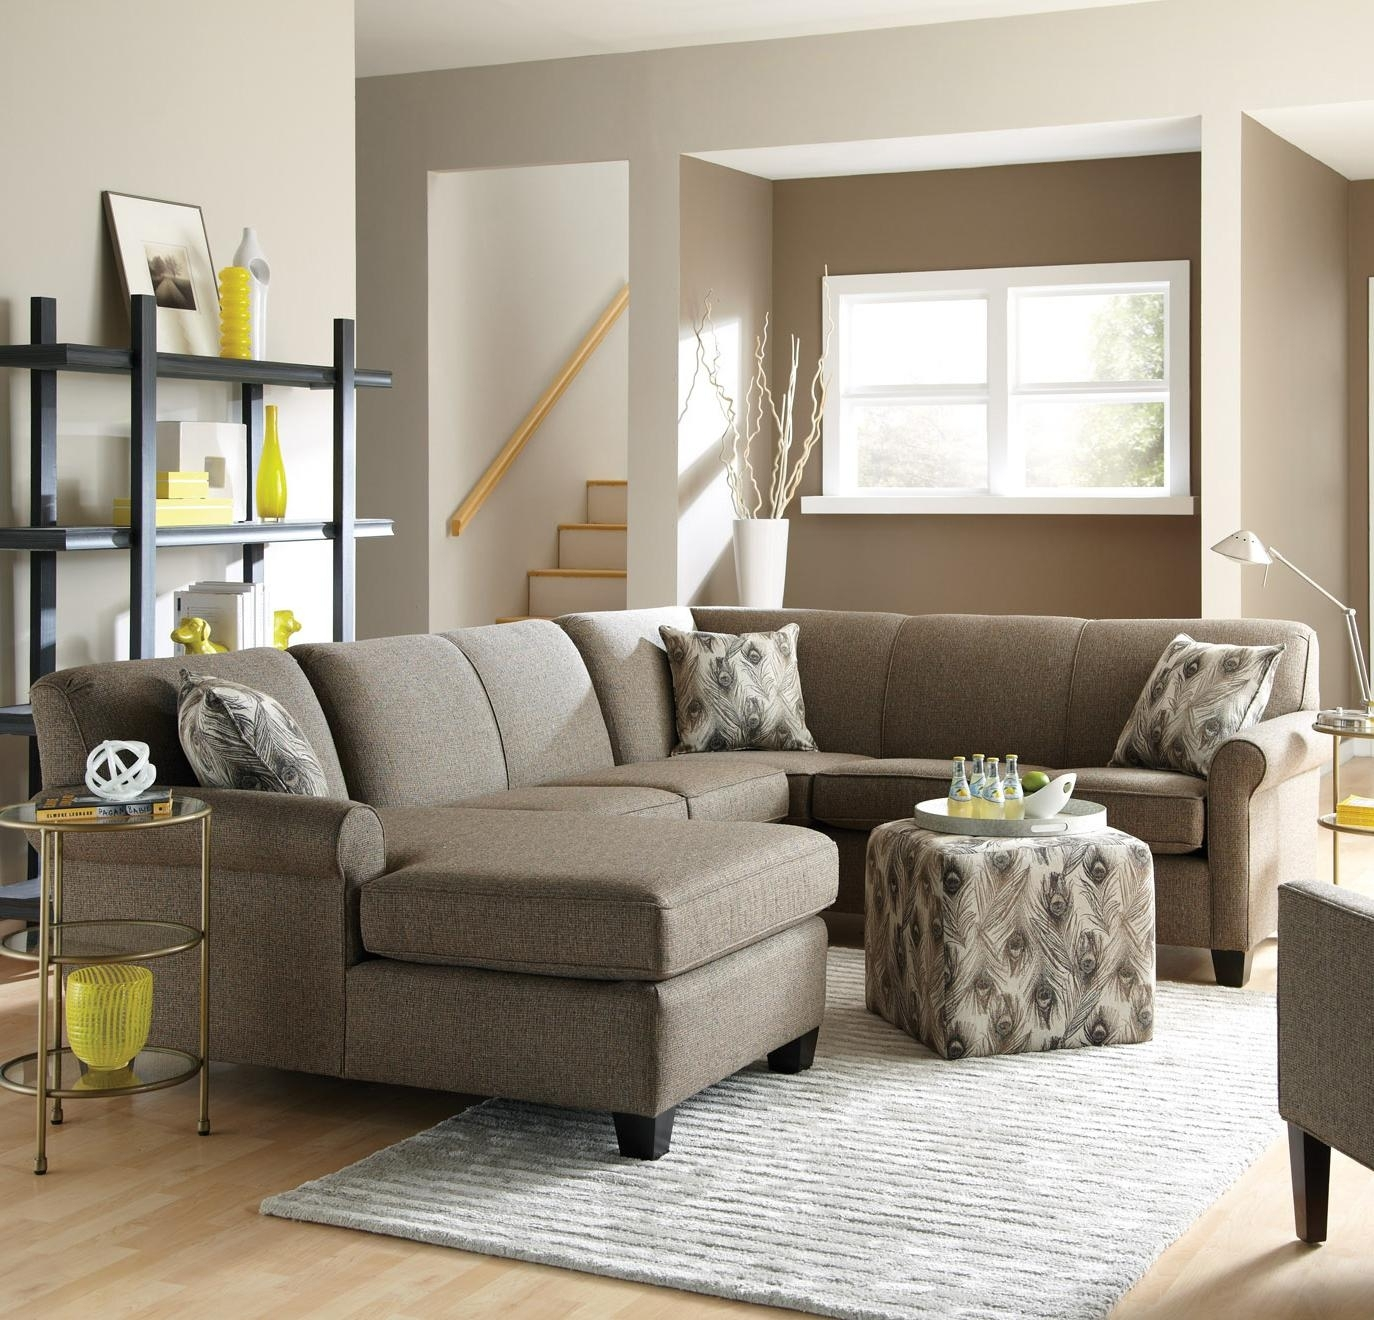 England Abalone Long Sectional Sofa With Chaise | Efo Furniture Pertaining To England Sectional Sofas (View 8 of 10)